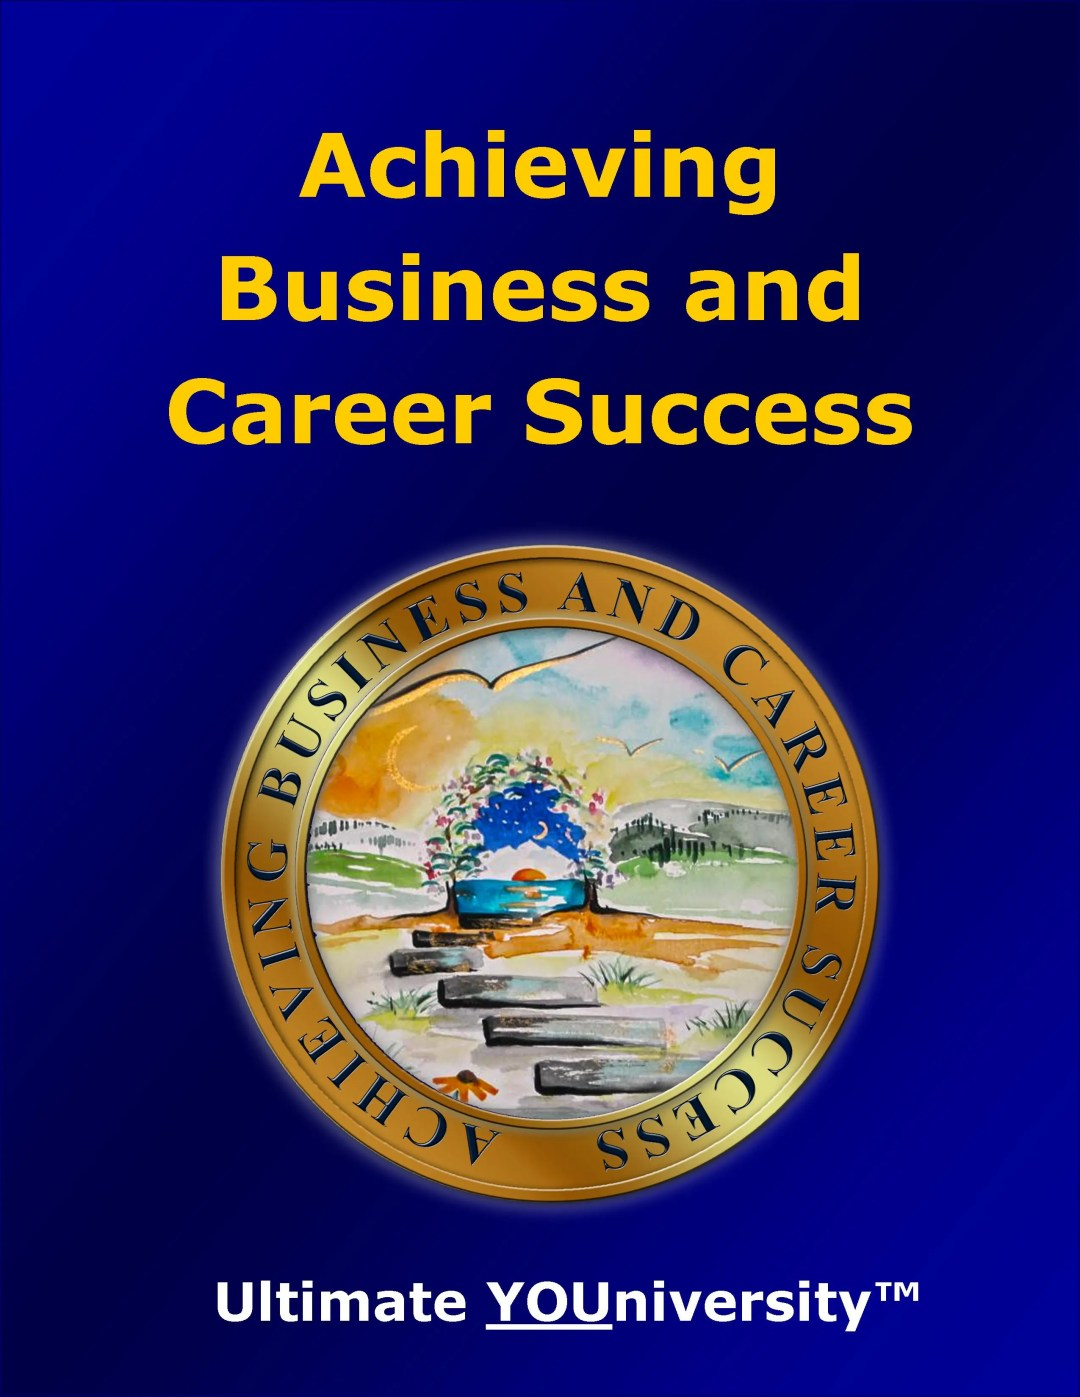 Achieving Business and Career Success, one of the 14 Categories